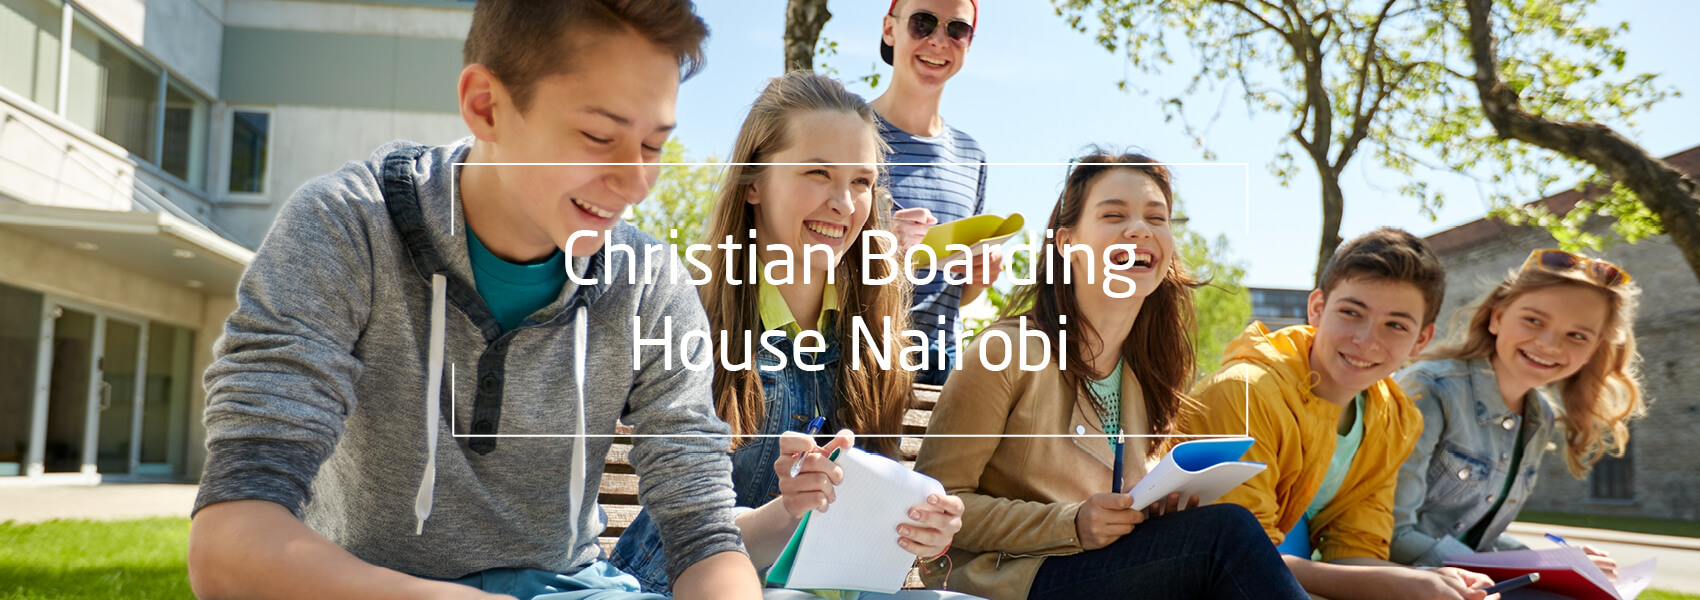 Jugendliche, Text: Christian Boarding House Nairobi